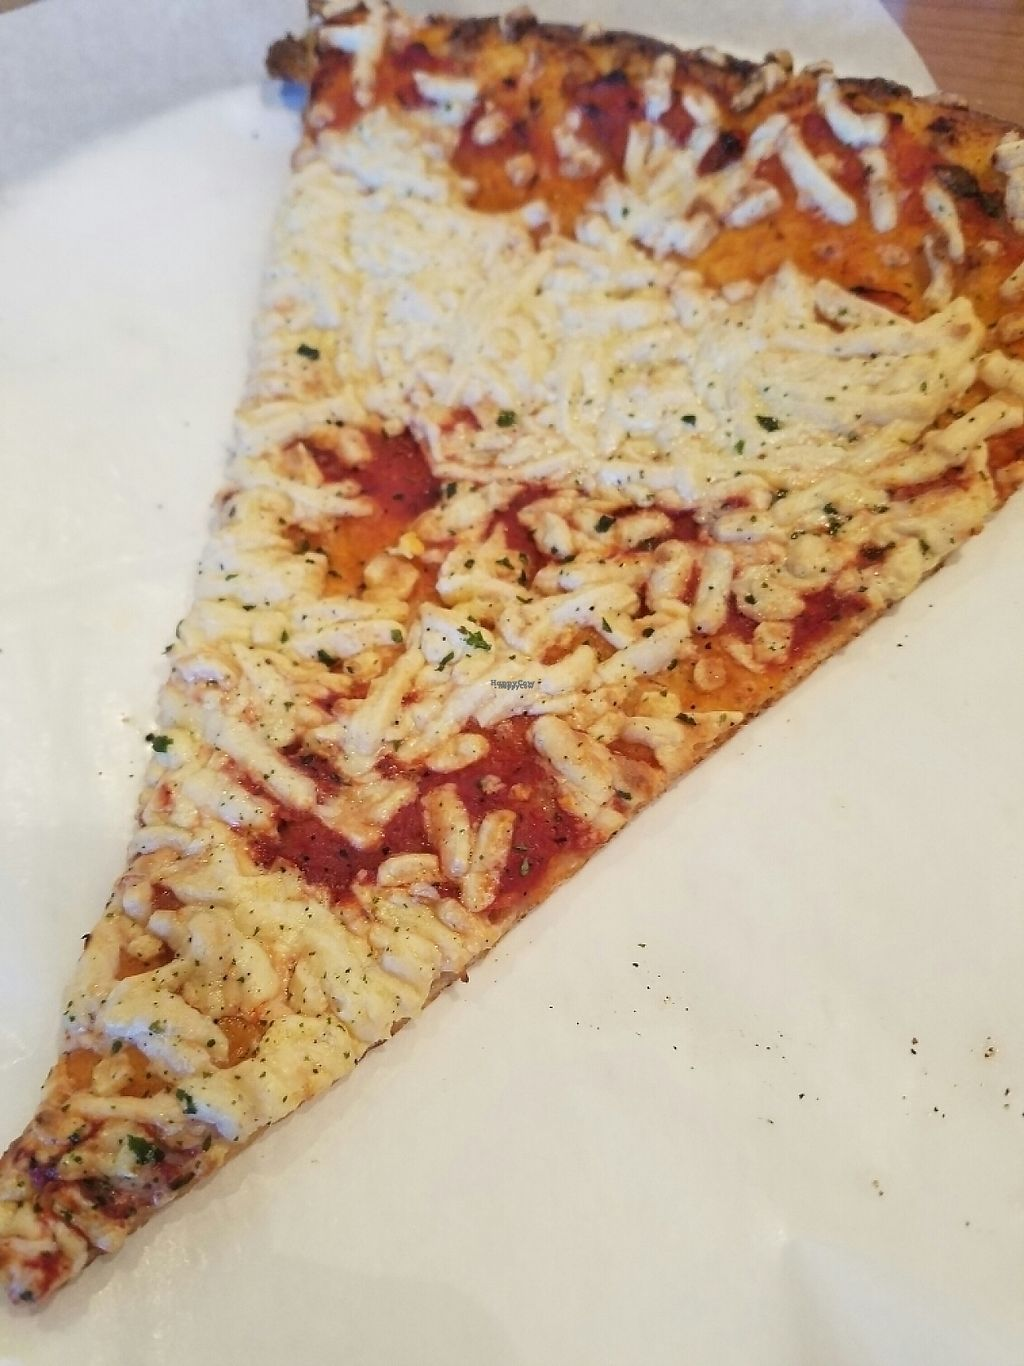 """Photo of Purgatory Pizza  by <a href=""""/members/profile/VictoriaAllison"""">VictoriaAllison</a> <br/>plain vegan Daiya slice, well done, nice and crispy ? <br/> February 23, 2017  - <a href='/contact/abuse/image/26622/229811'>Report</a>"""